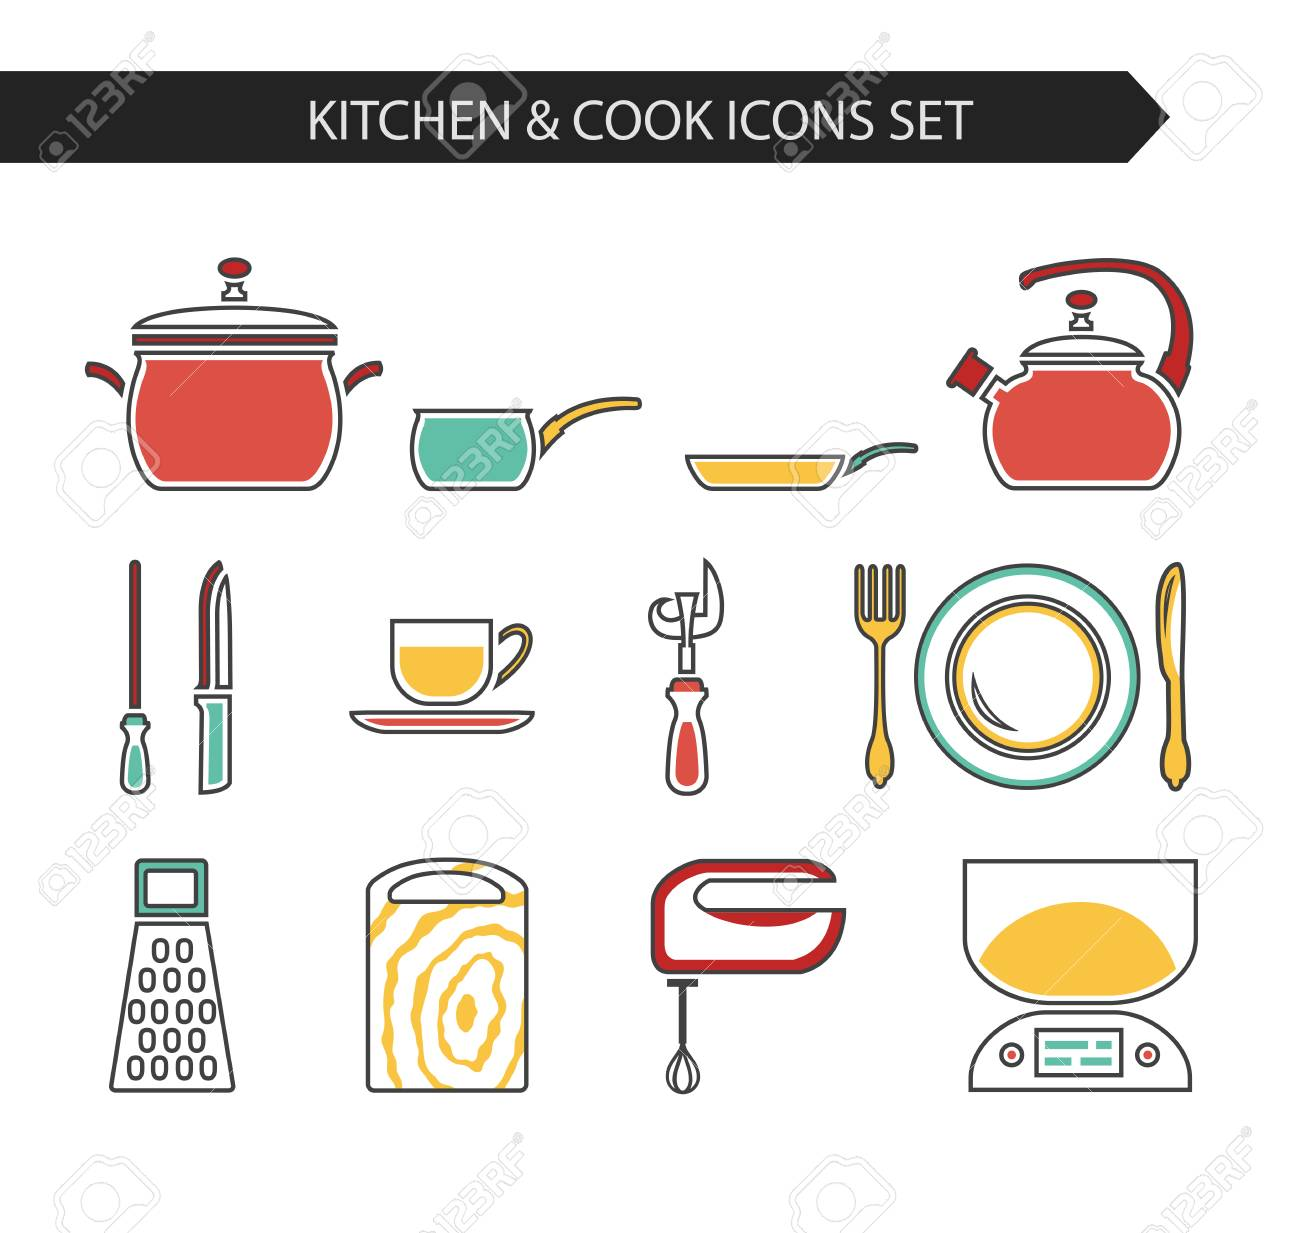 6eac0517b2 Thin line flat vector kitchen and cook icons. Design elements set for  website isolated on